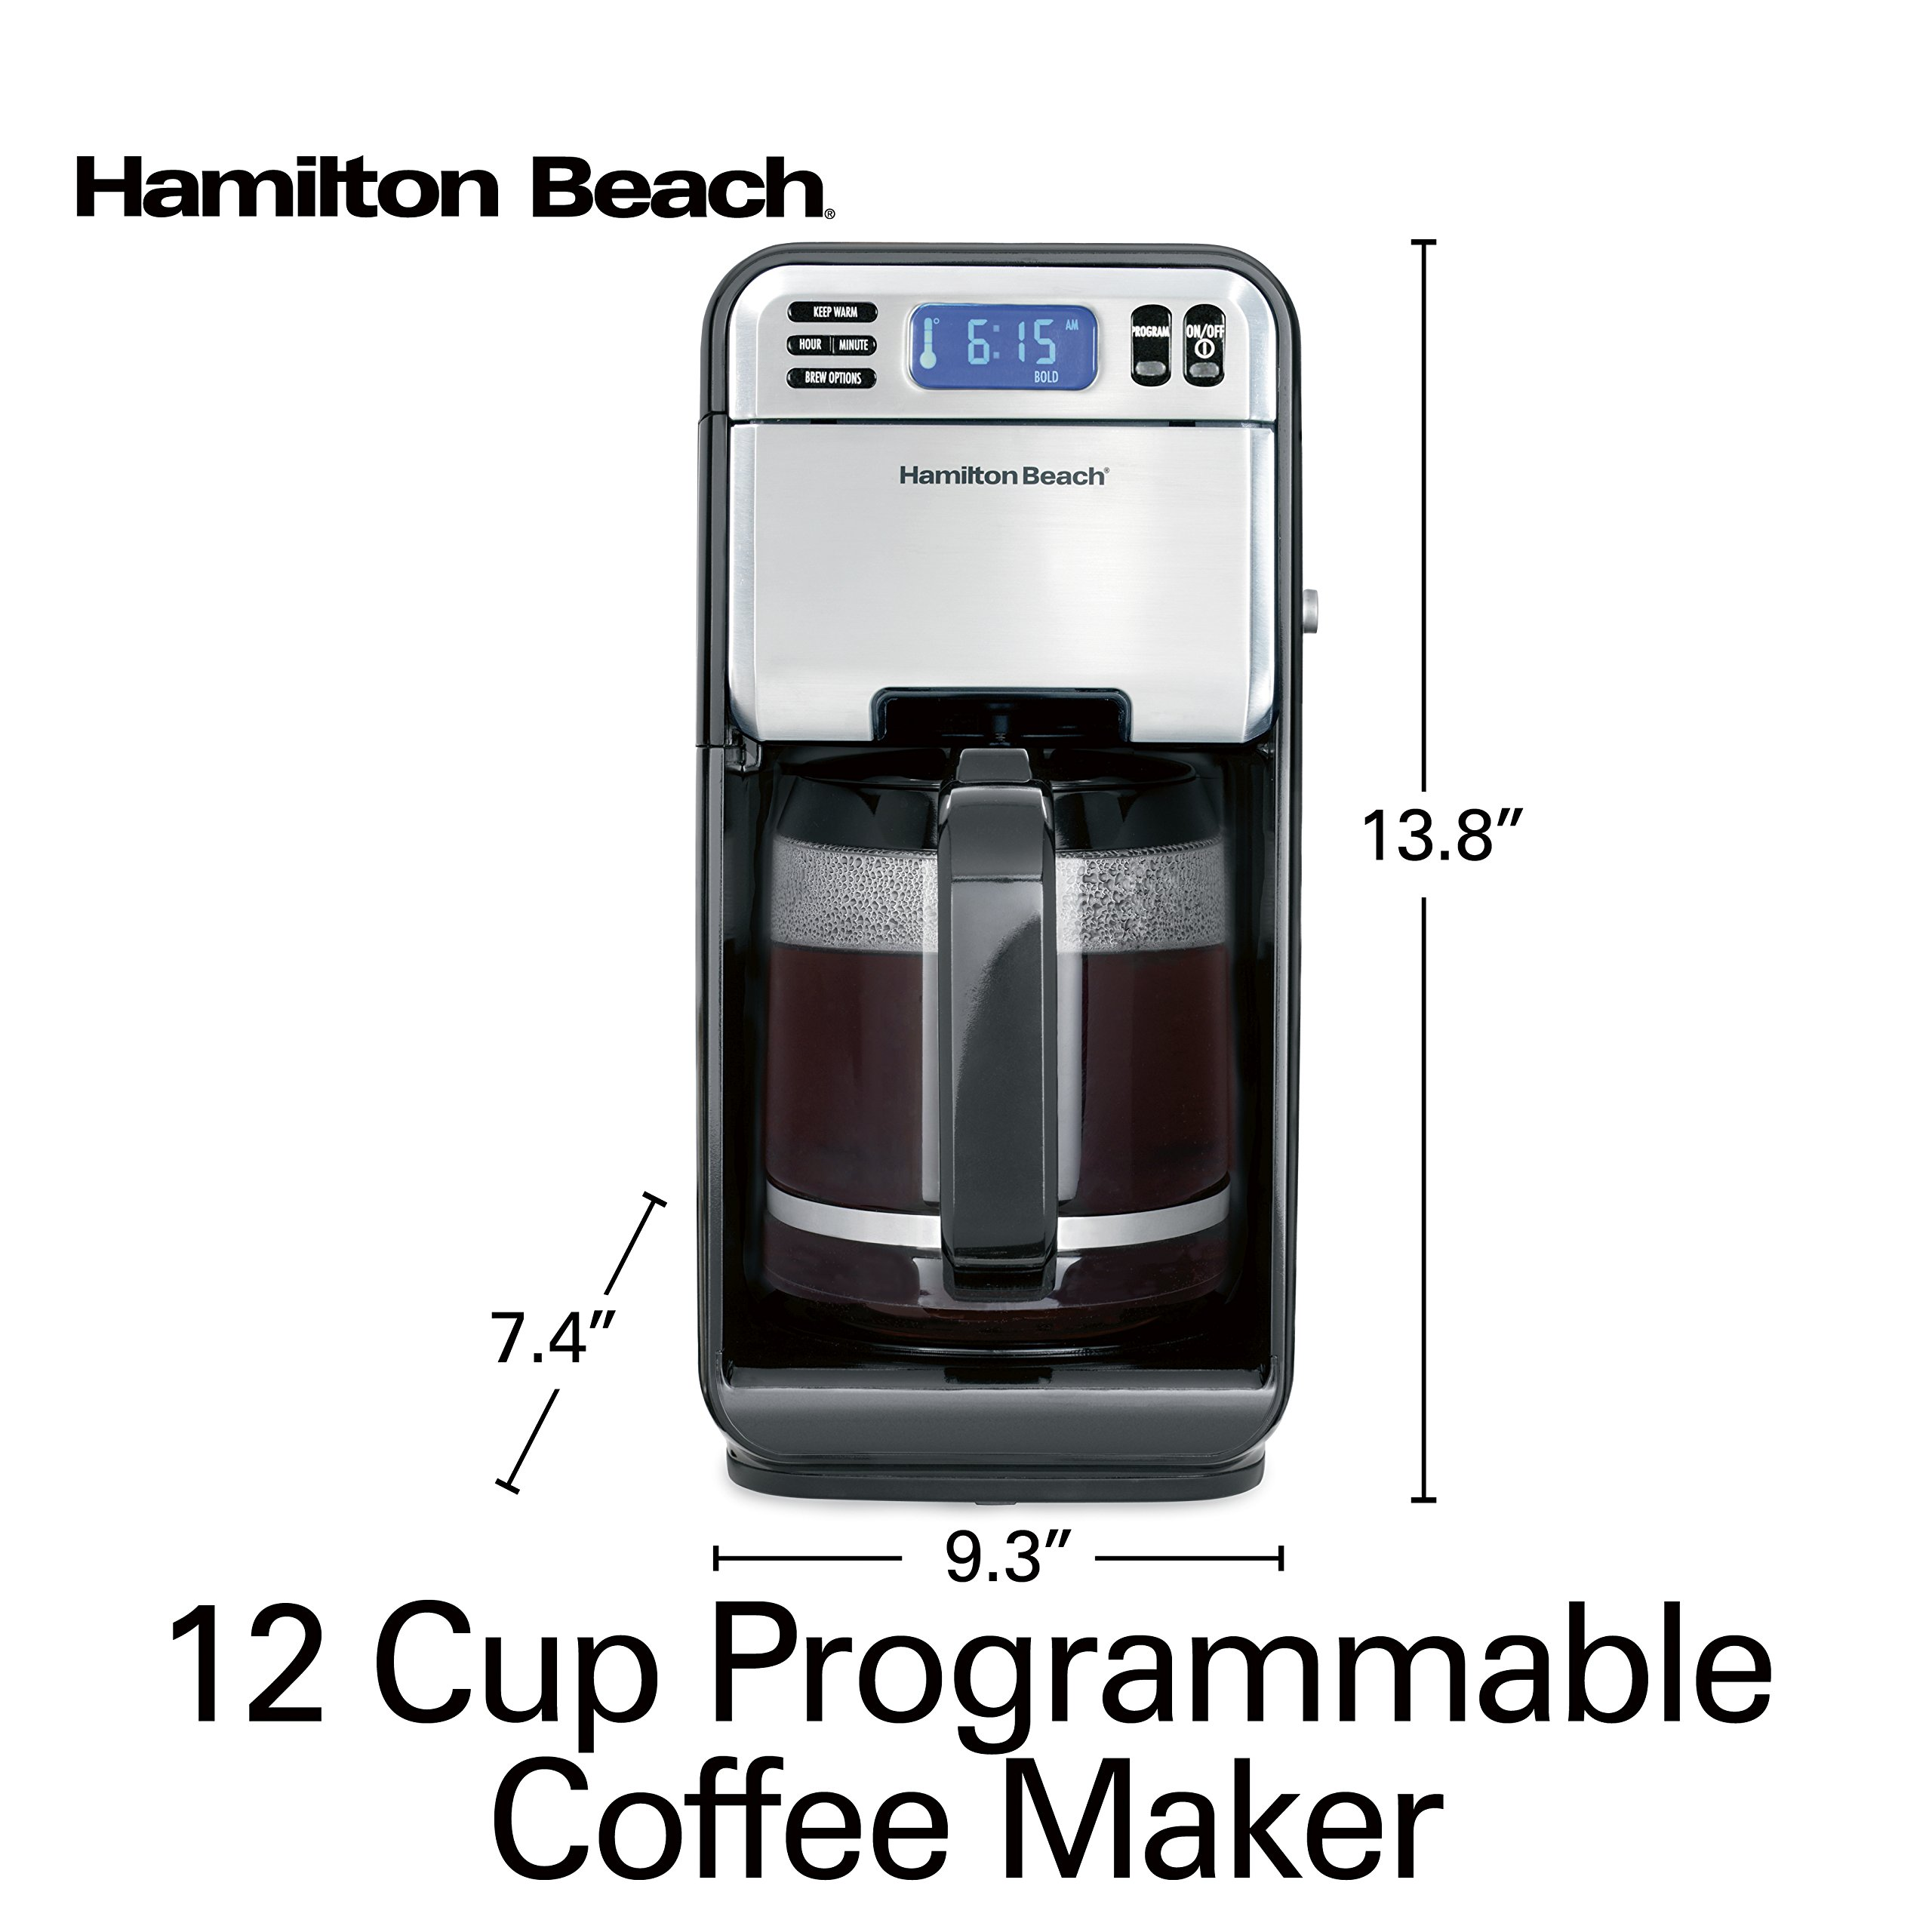 Hamilton Beach (46205) Coffee Maker, Programmable with 12 Cup Capacity, Stainless Steel by Hamilton Beach (Image #8)